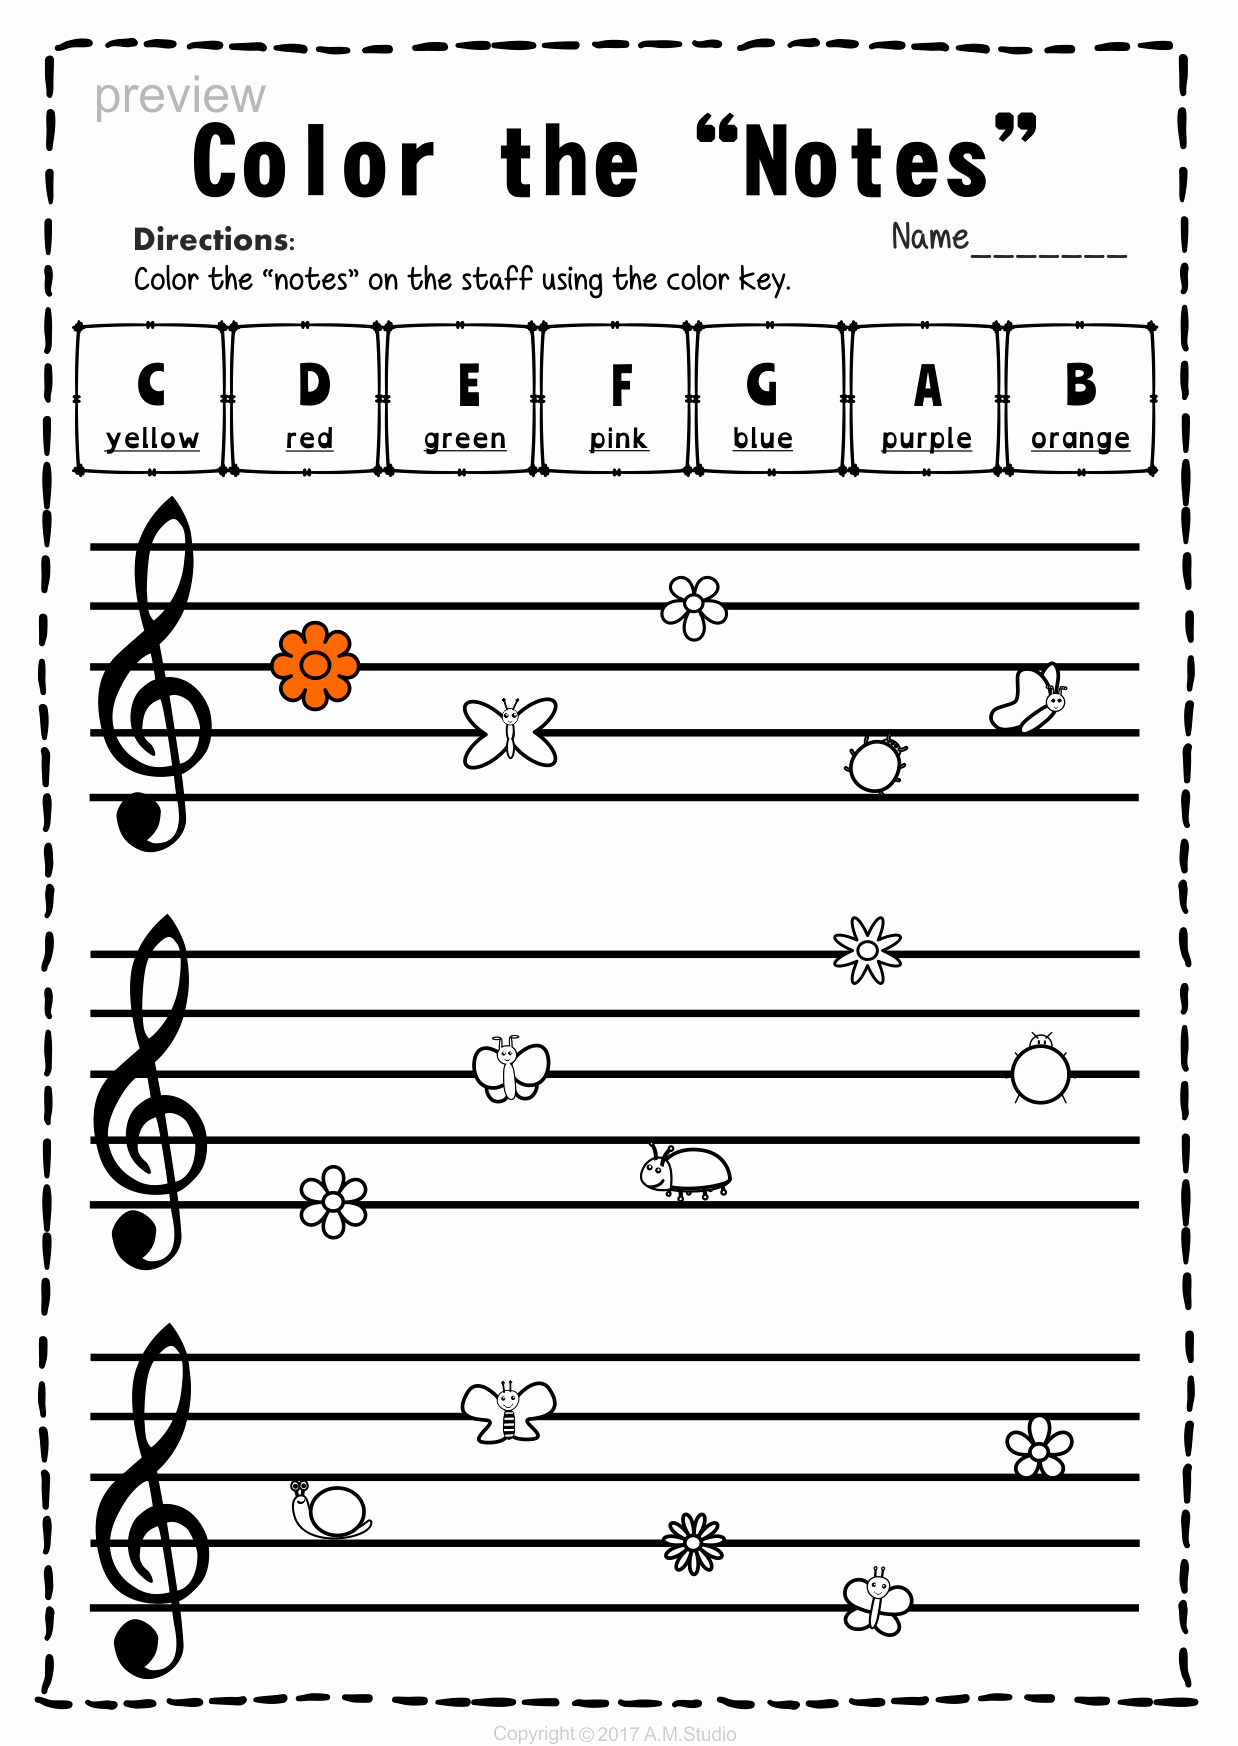 Music theory Worksheet for Kids Elegant Treble Clef Note Naming Worksheets for Spring with Images